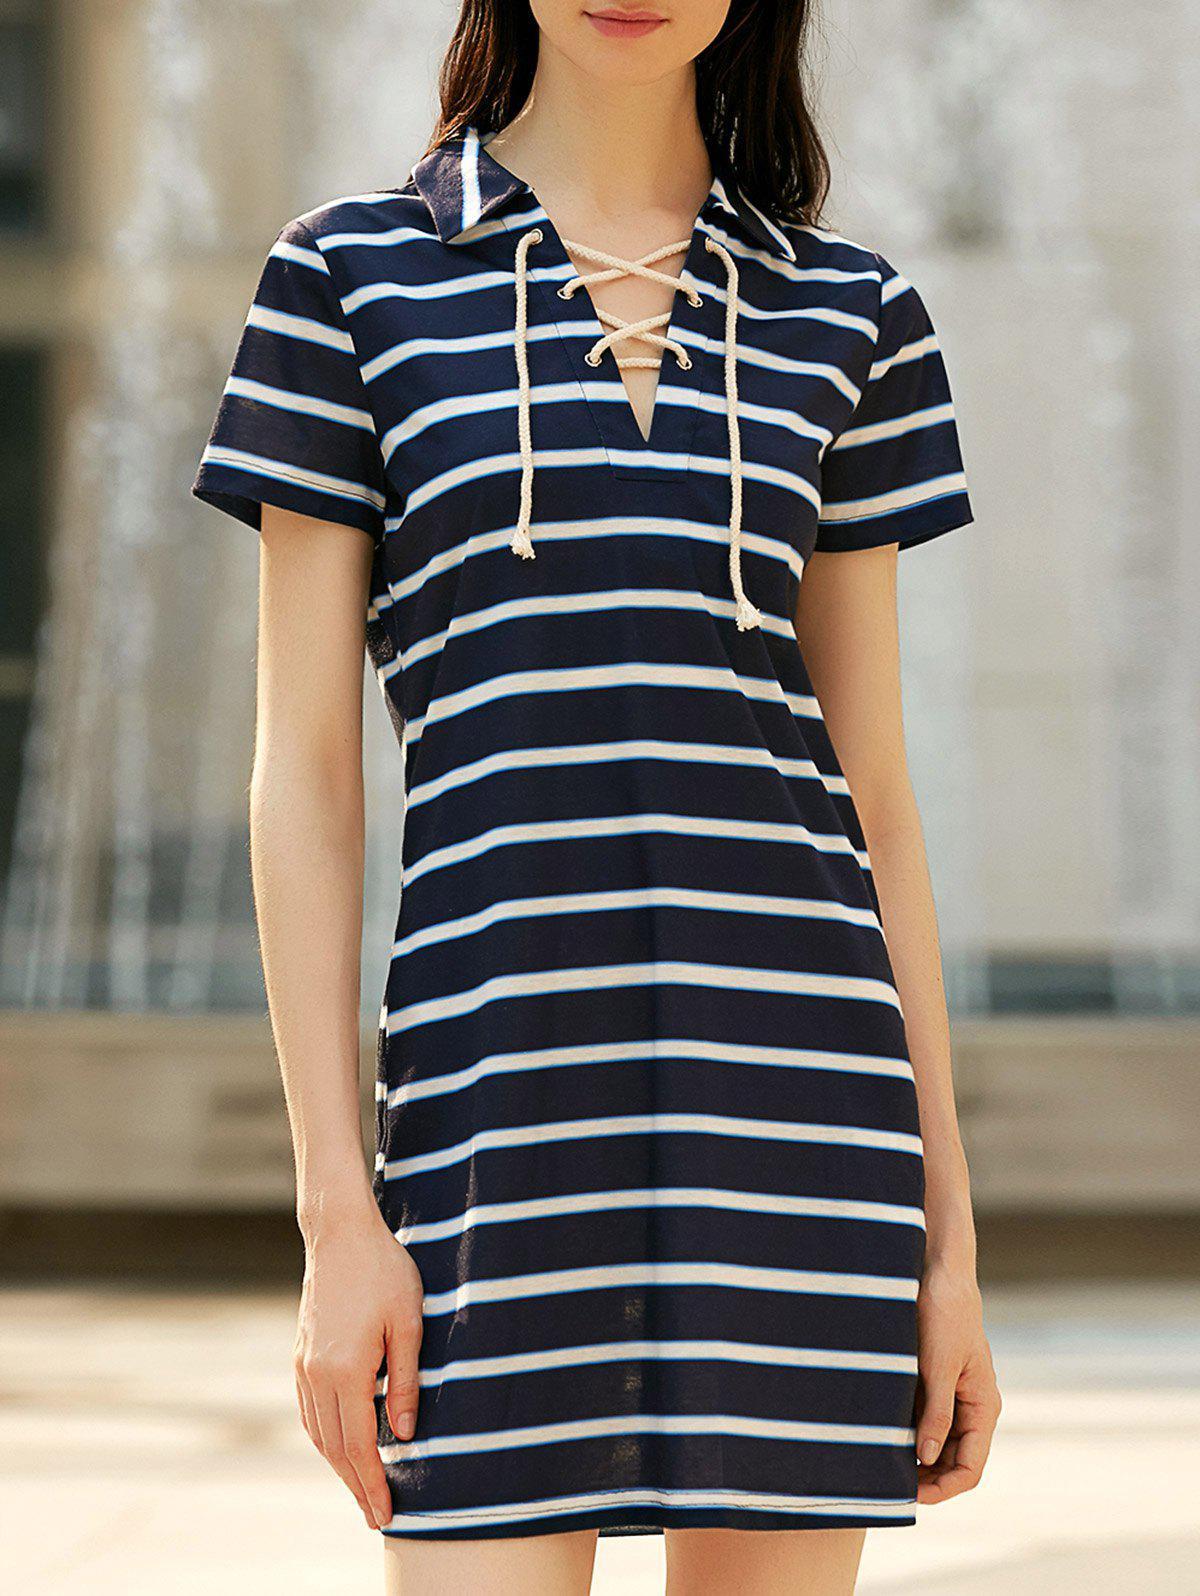 Buy Lace-up Striped Casual T-shirt Dress